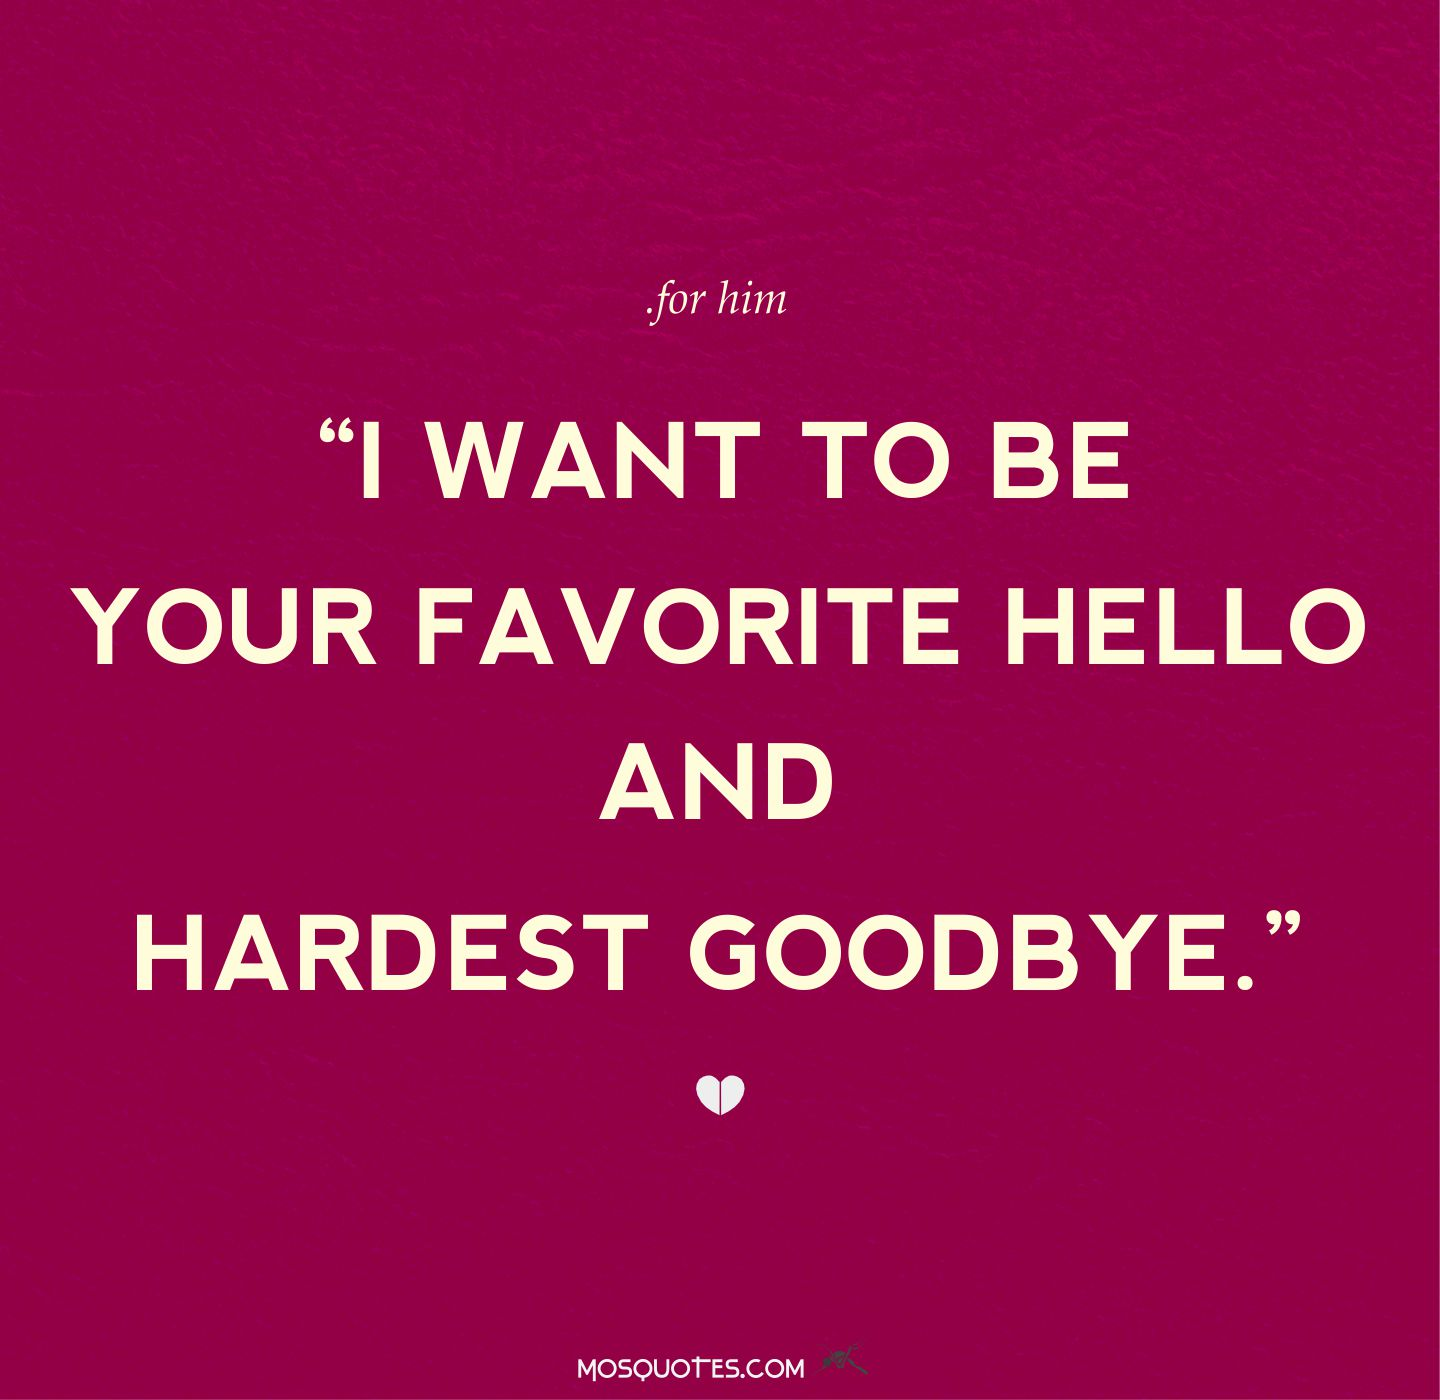 Quotes Of Loving Him: Goodbye Love Quotes For Him. QuotesGram